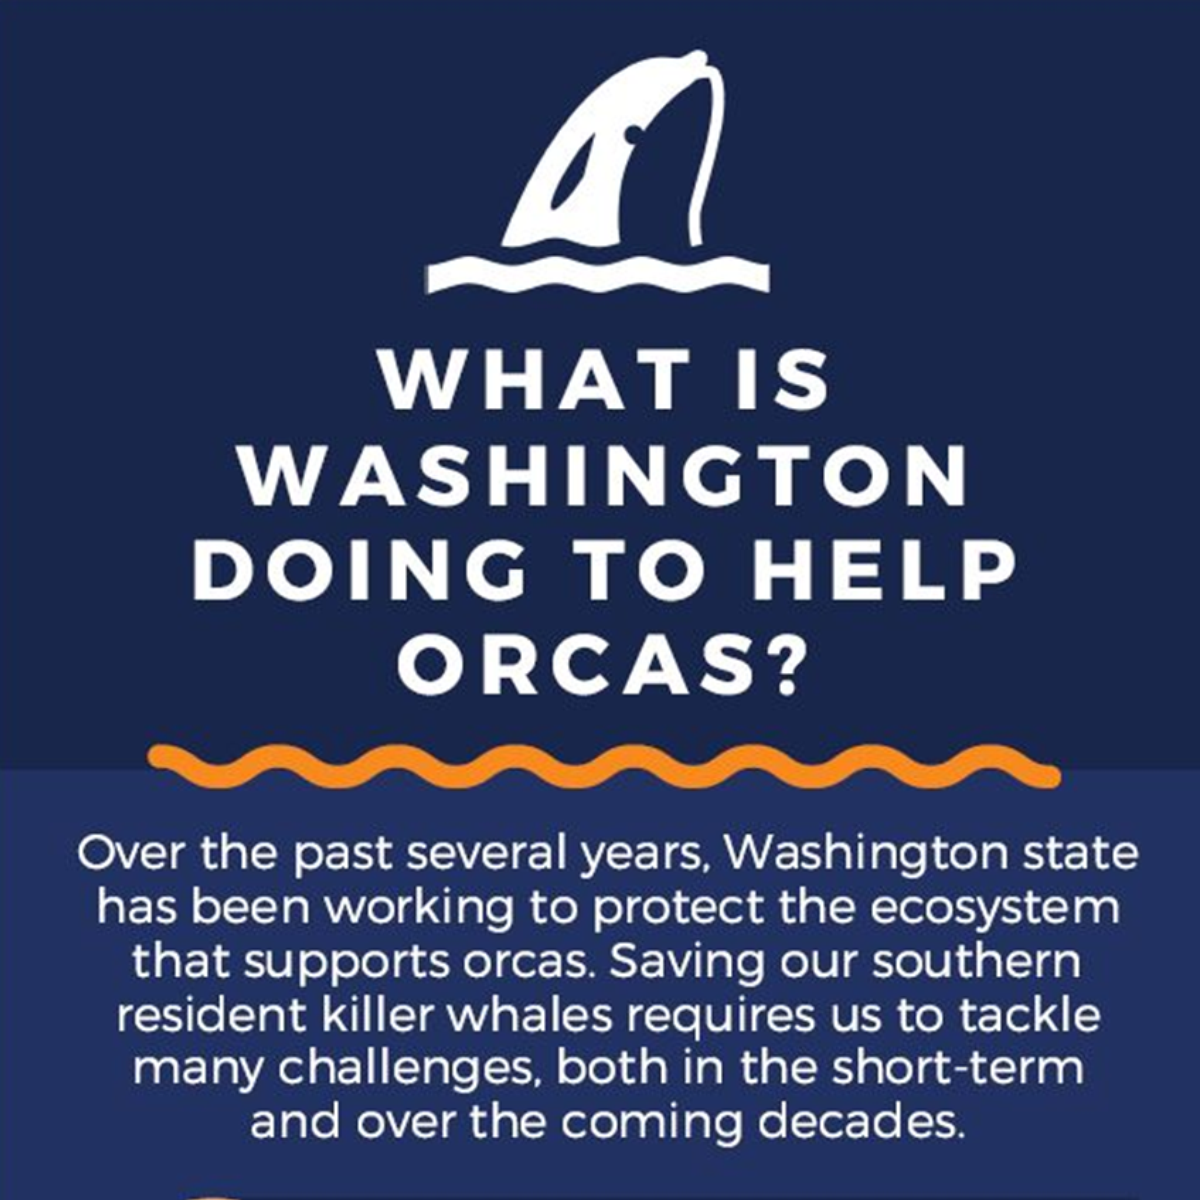 What is Washington doing to help orcas? Beyond protecting the ecosystem that supports orcas, we must tackle new short and long-term challenges.